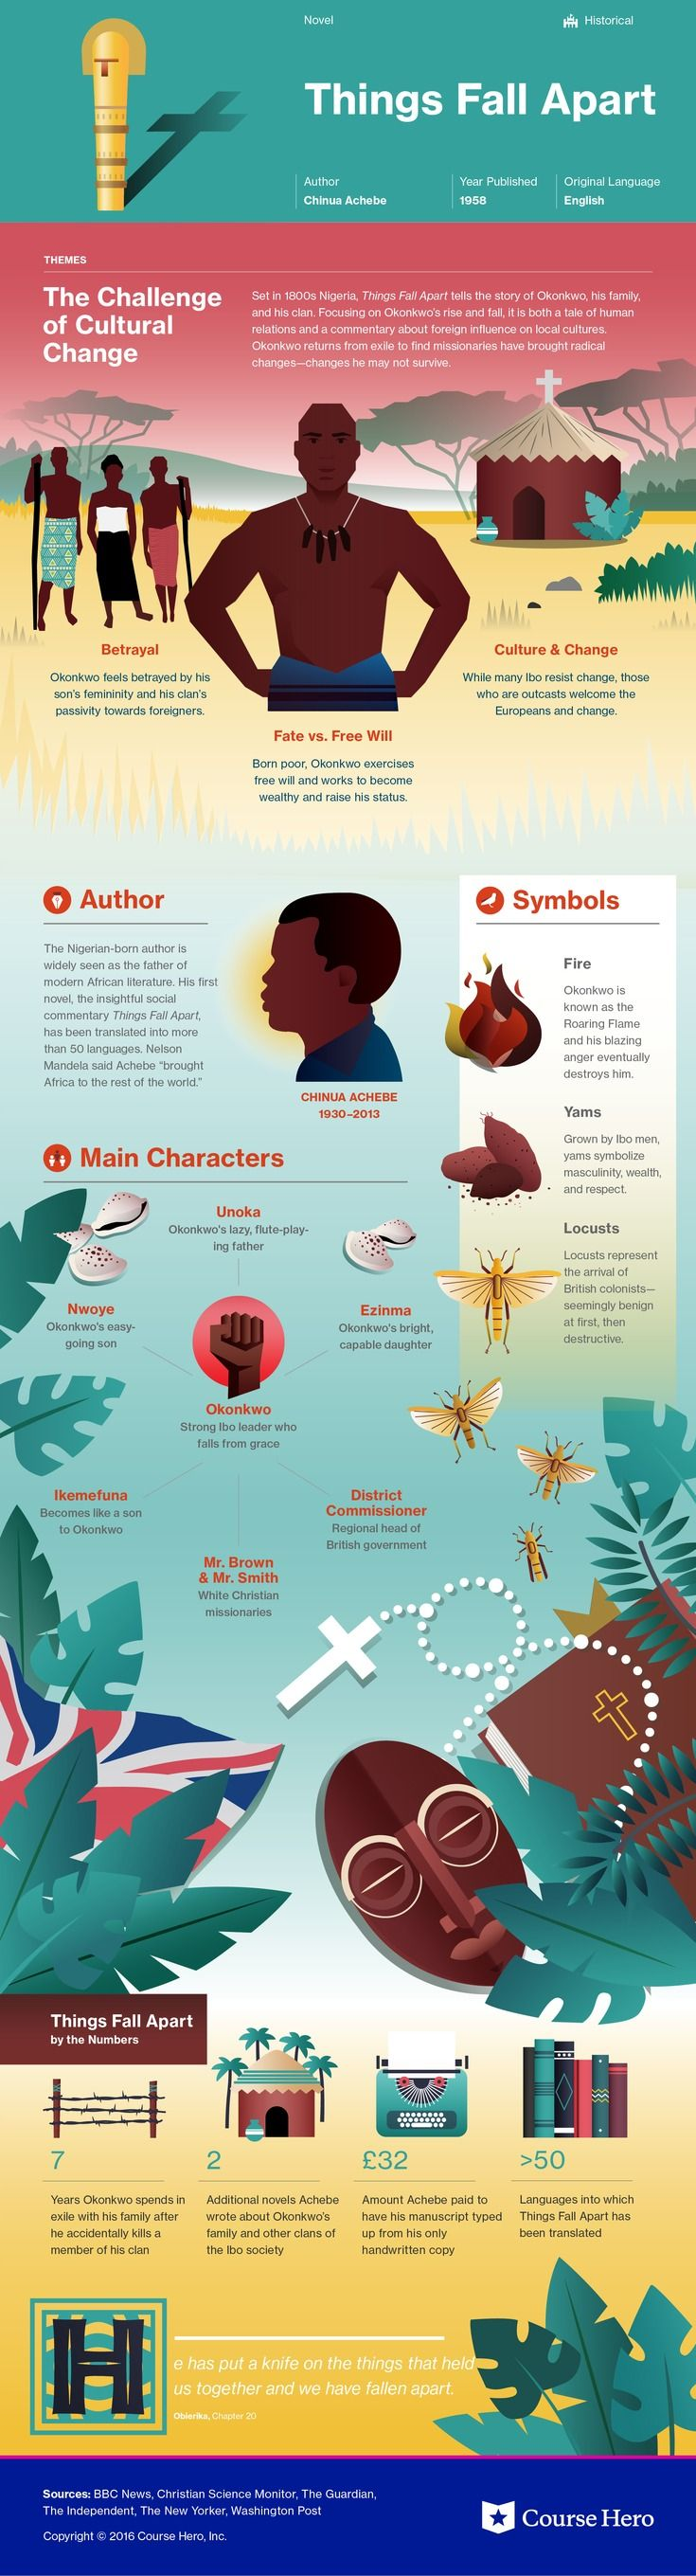 best ideas about chinua achebe things fall apart chinua achebe s things fall apart infographic to help you understand everything about the book visually learn all about the characters themes